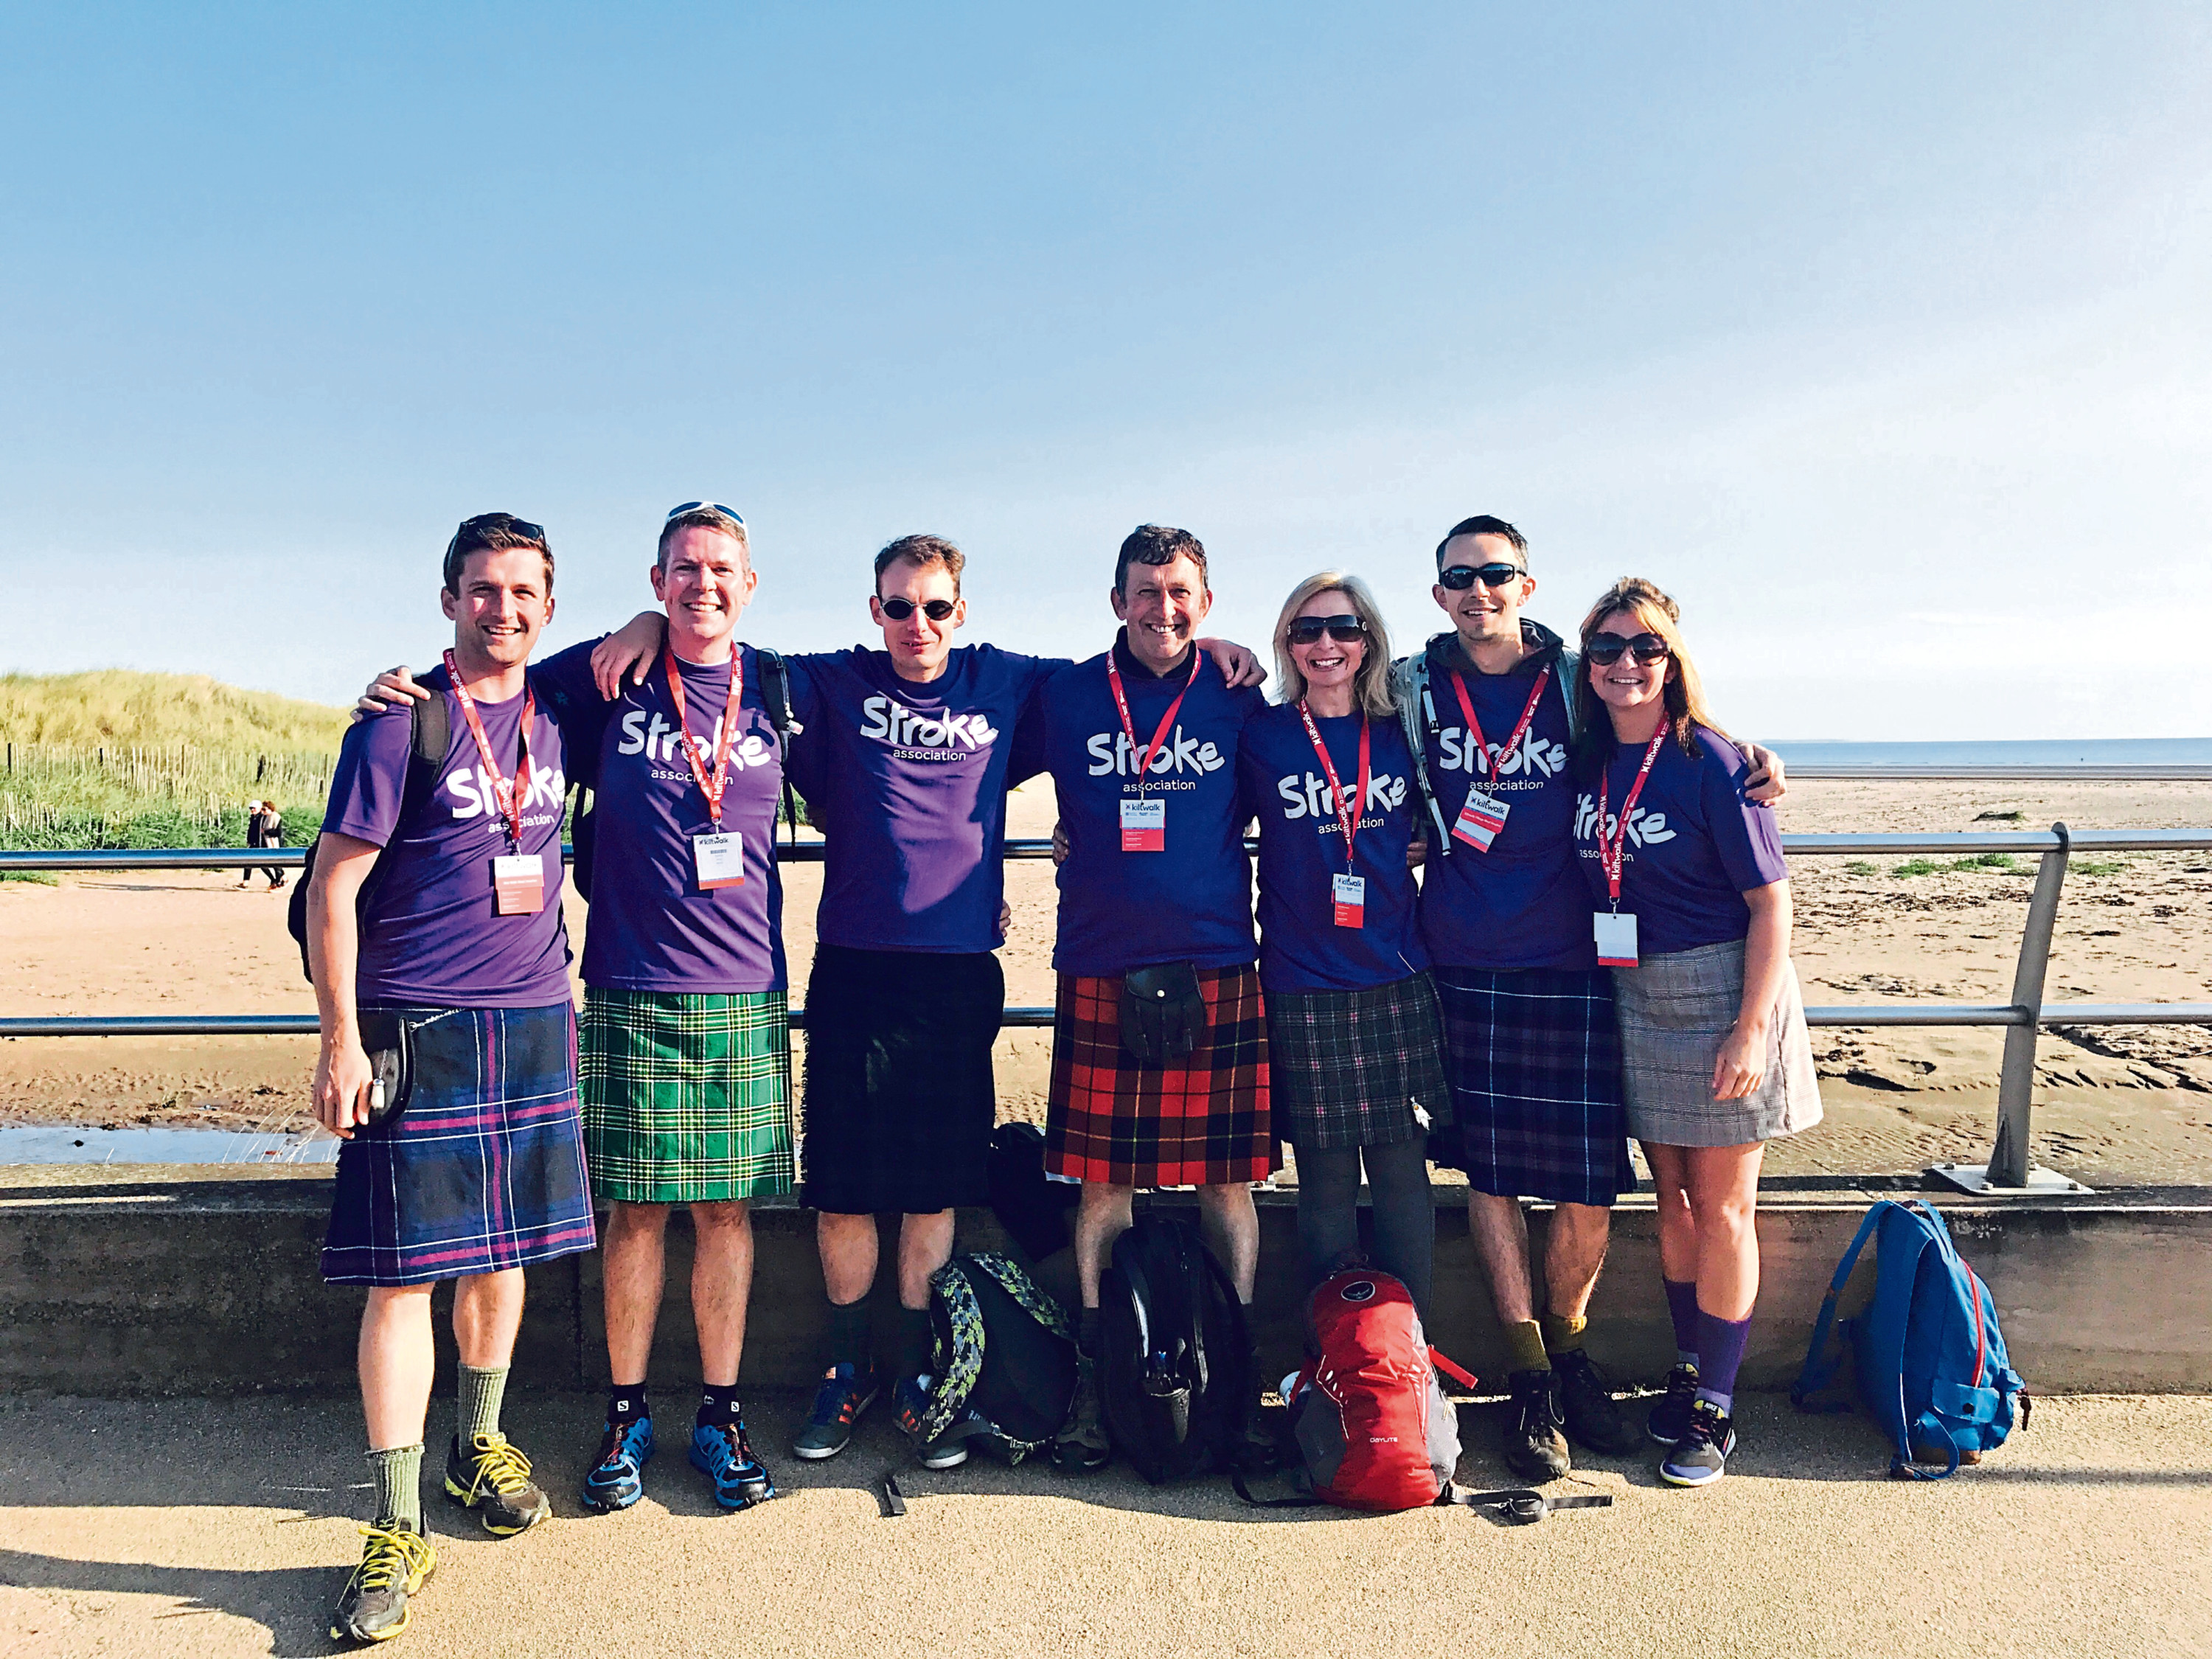 Be a Kiltwalk hero and join Team Stroke at the Dundee Kiltwalk.